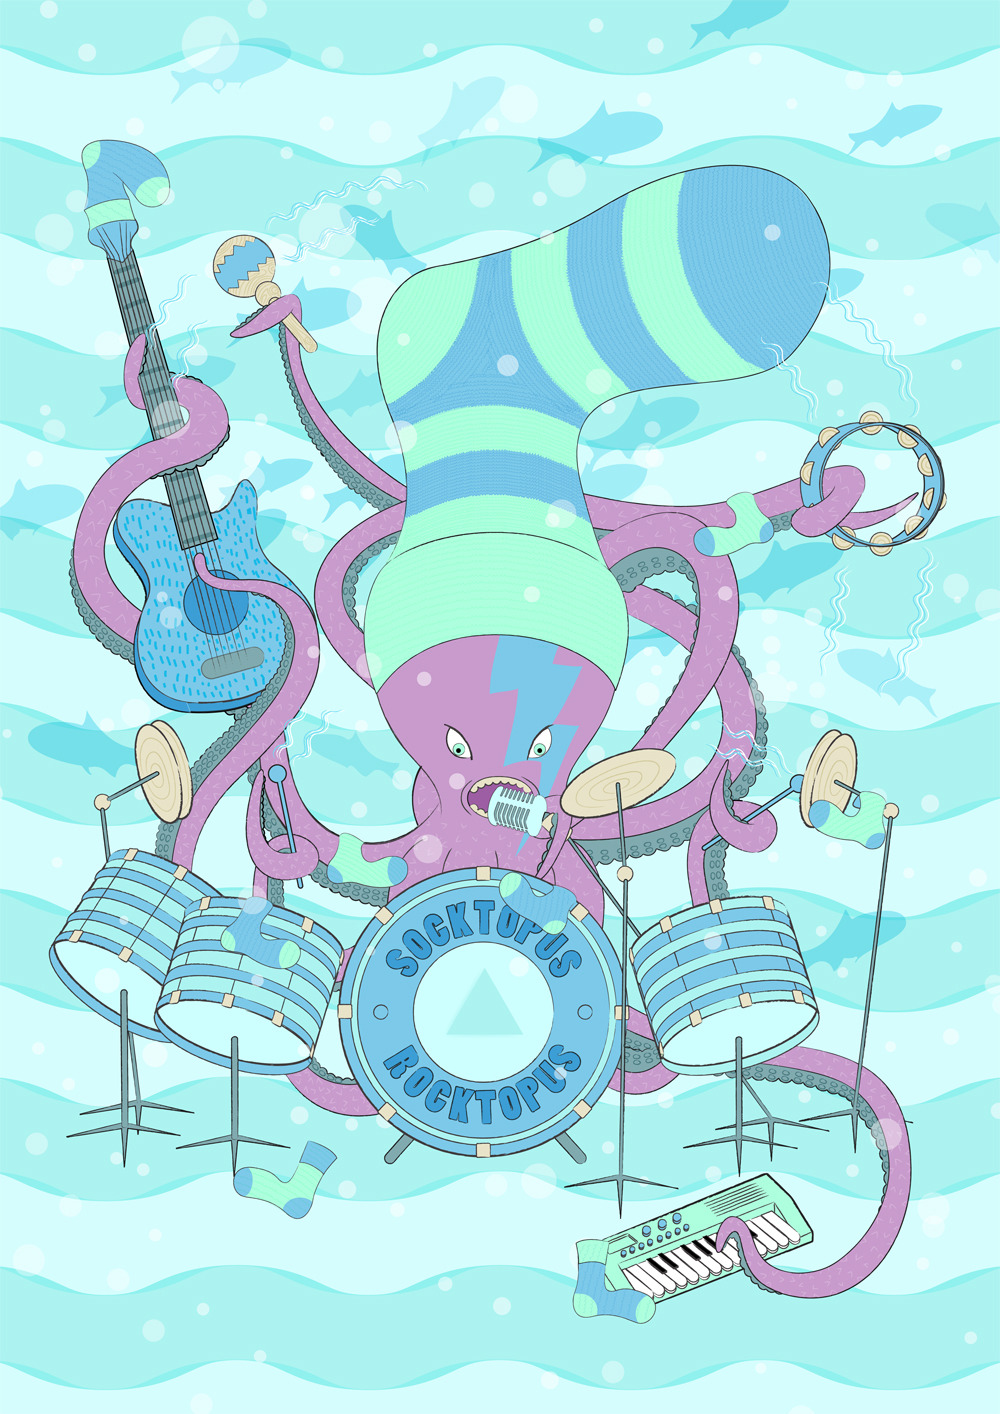 Socktopus Rocktopus. I know you have all been waiting for me to finnish this one ha ha. Garryhannah.org twitter.com/gh84z